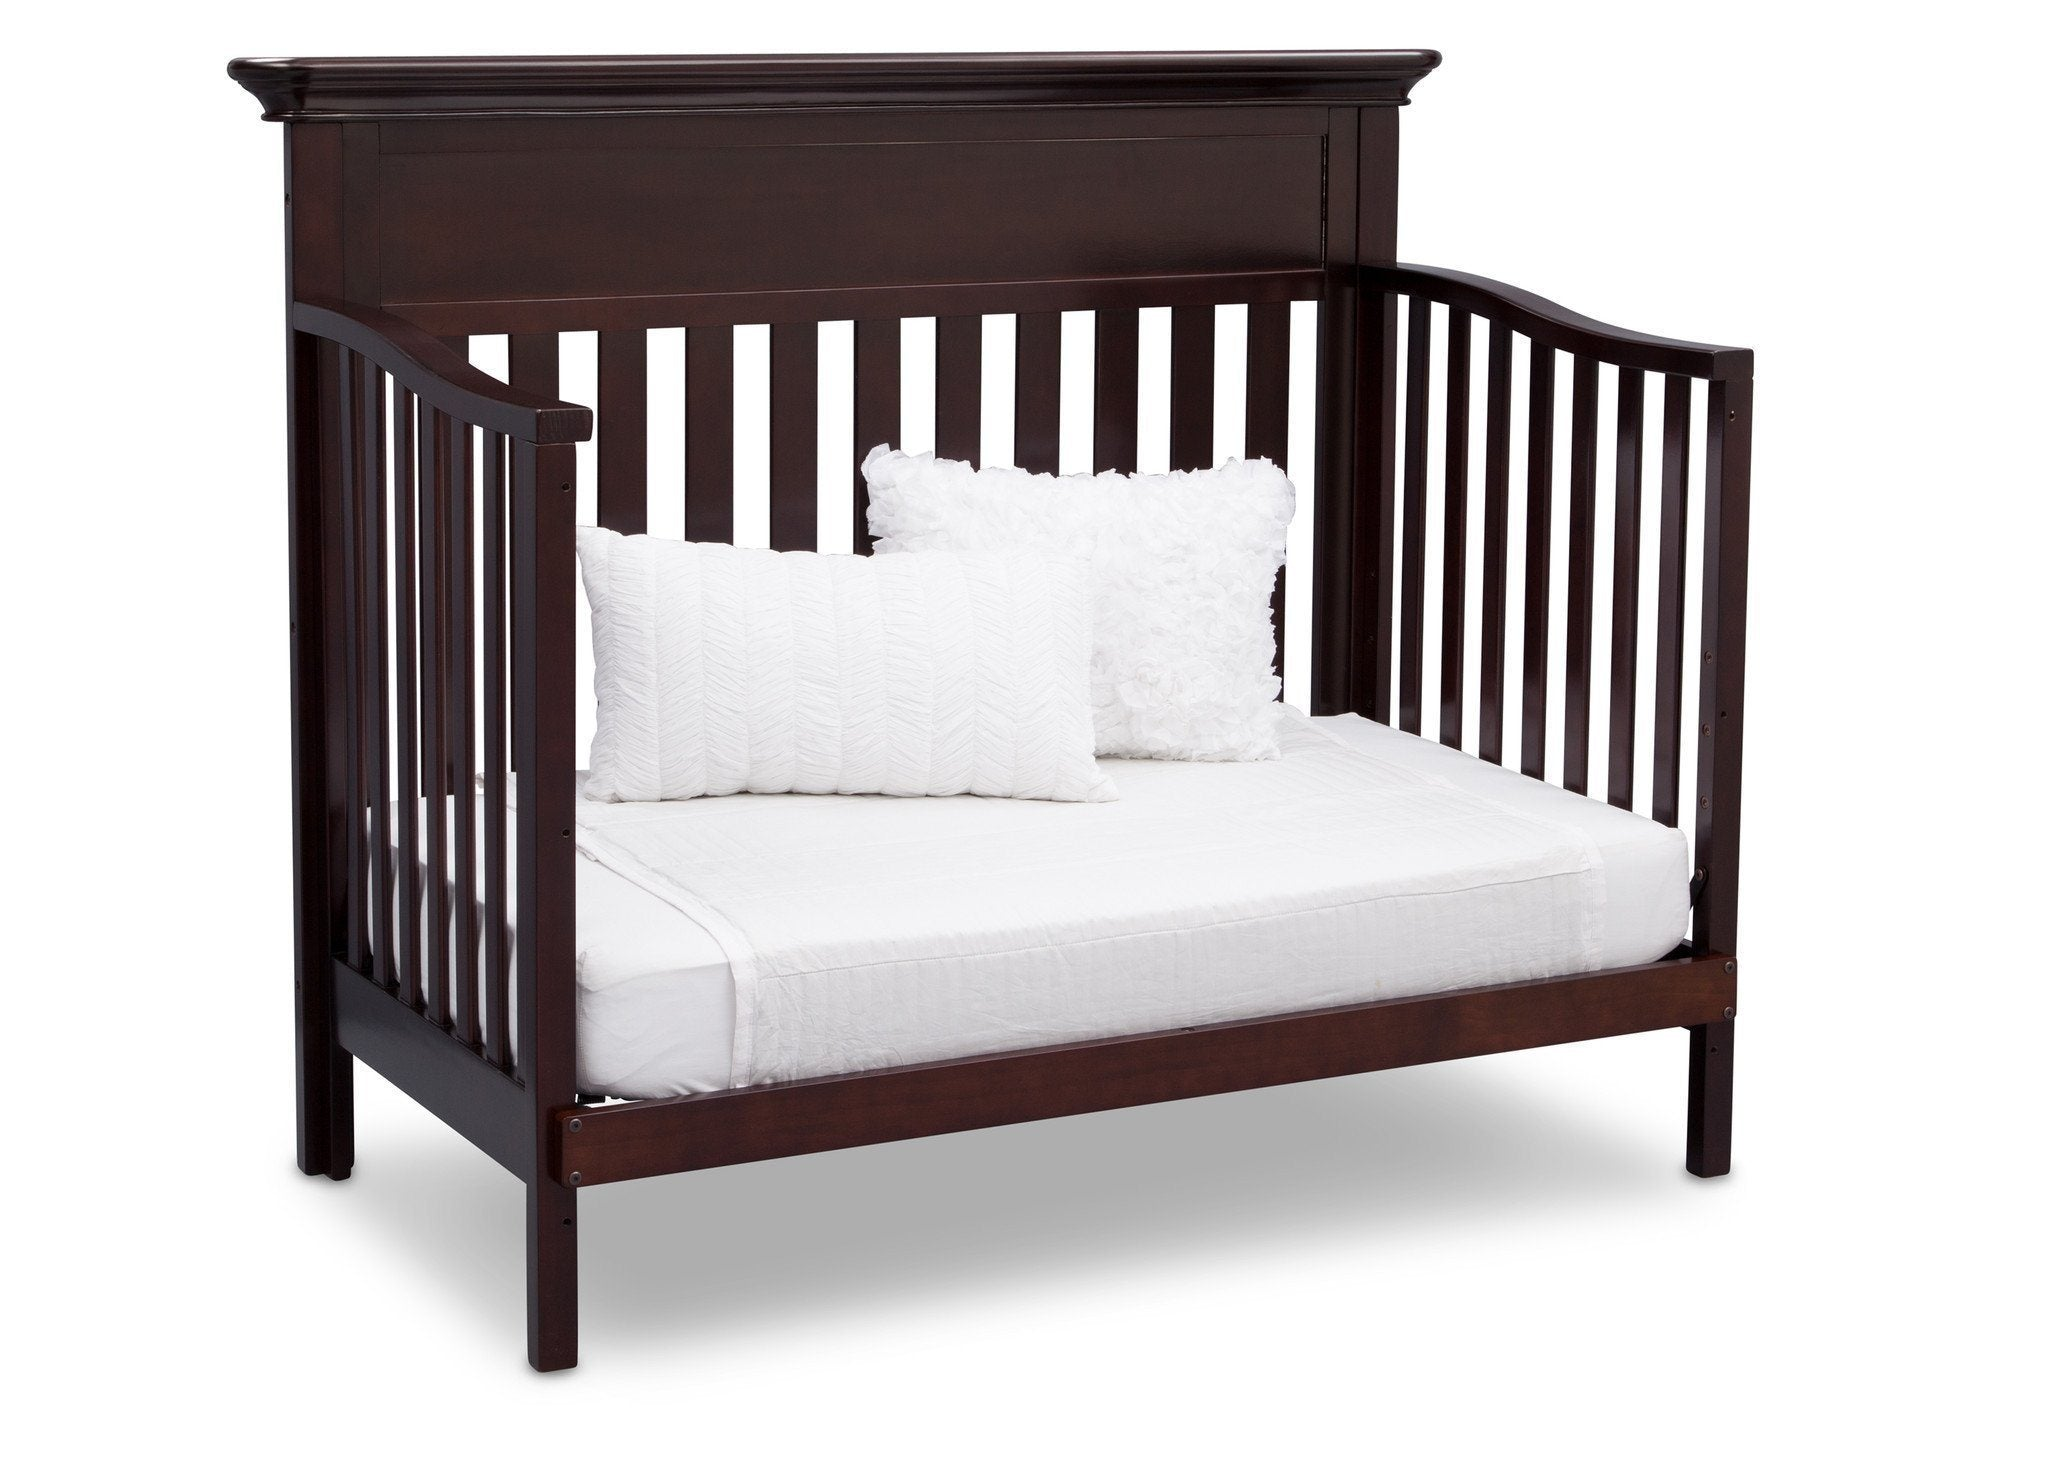 Serta Dark Chocolate (207) Fernwood 4-in-1 Crib, Side View with Day Bed Conversion c6c